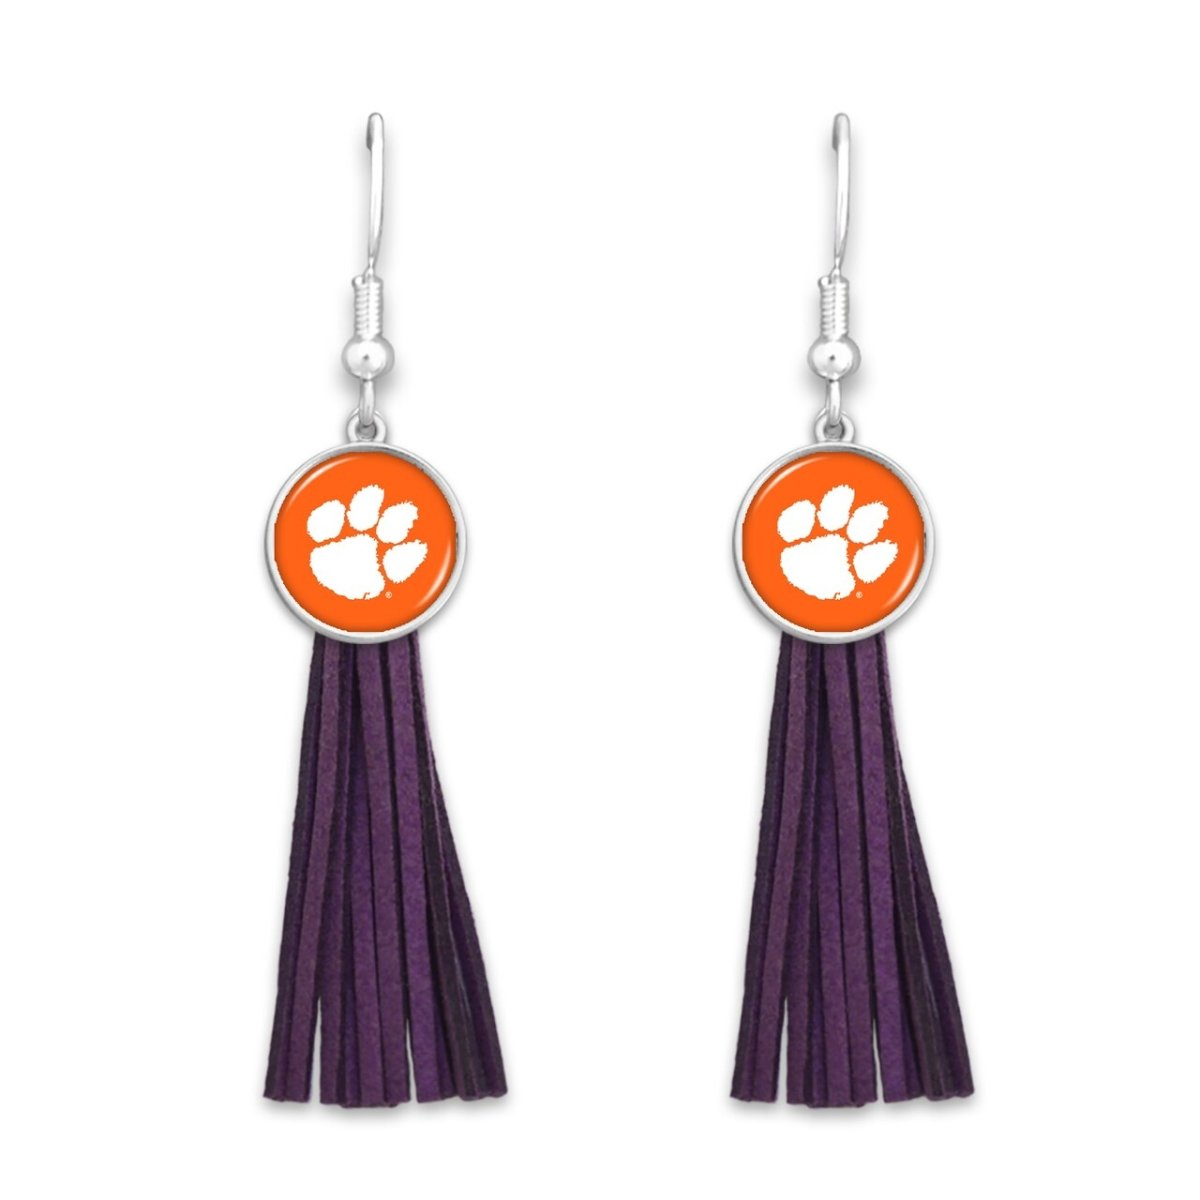 Clemson Harper Tassel Earrings - Mr. Knickerbocker